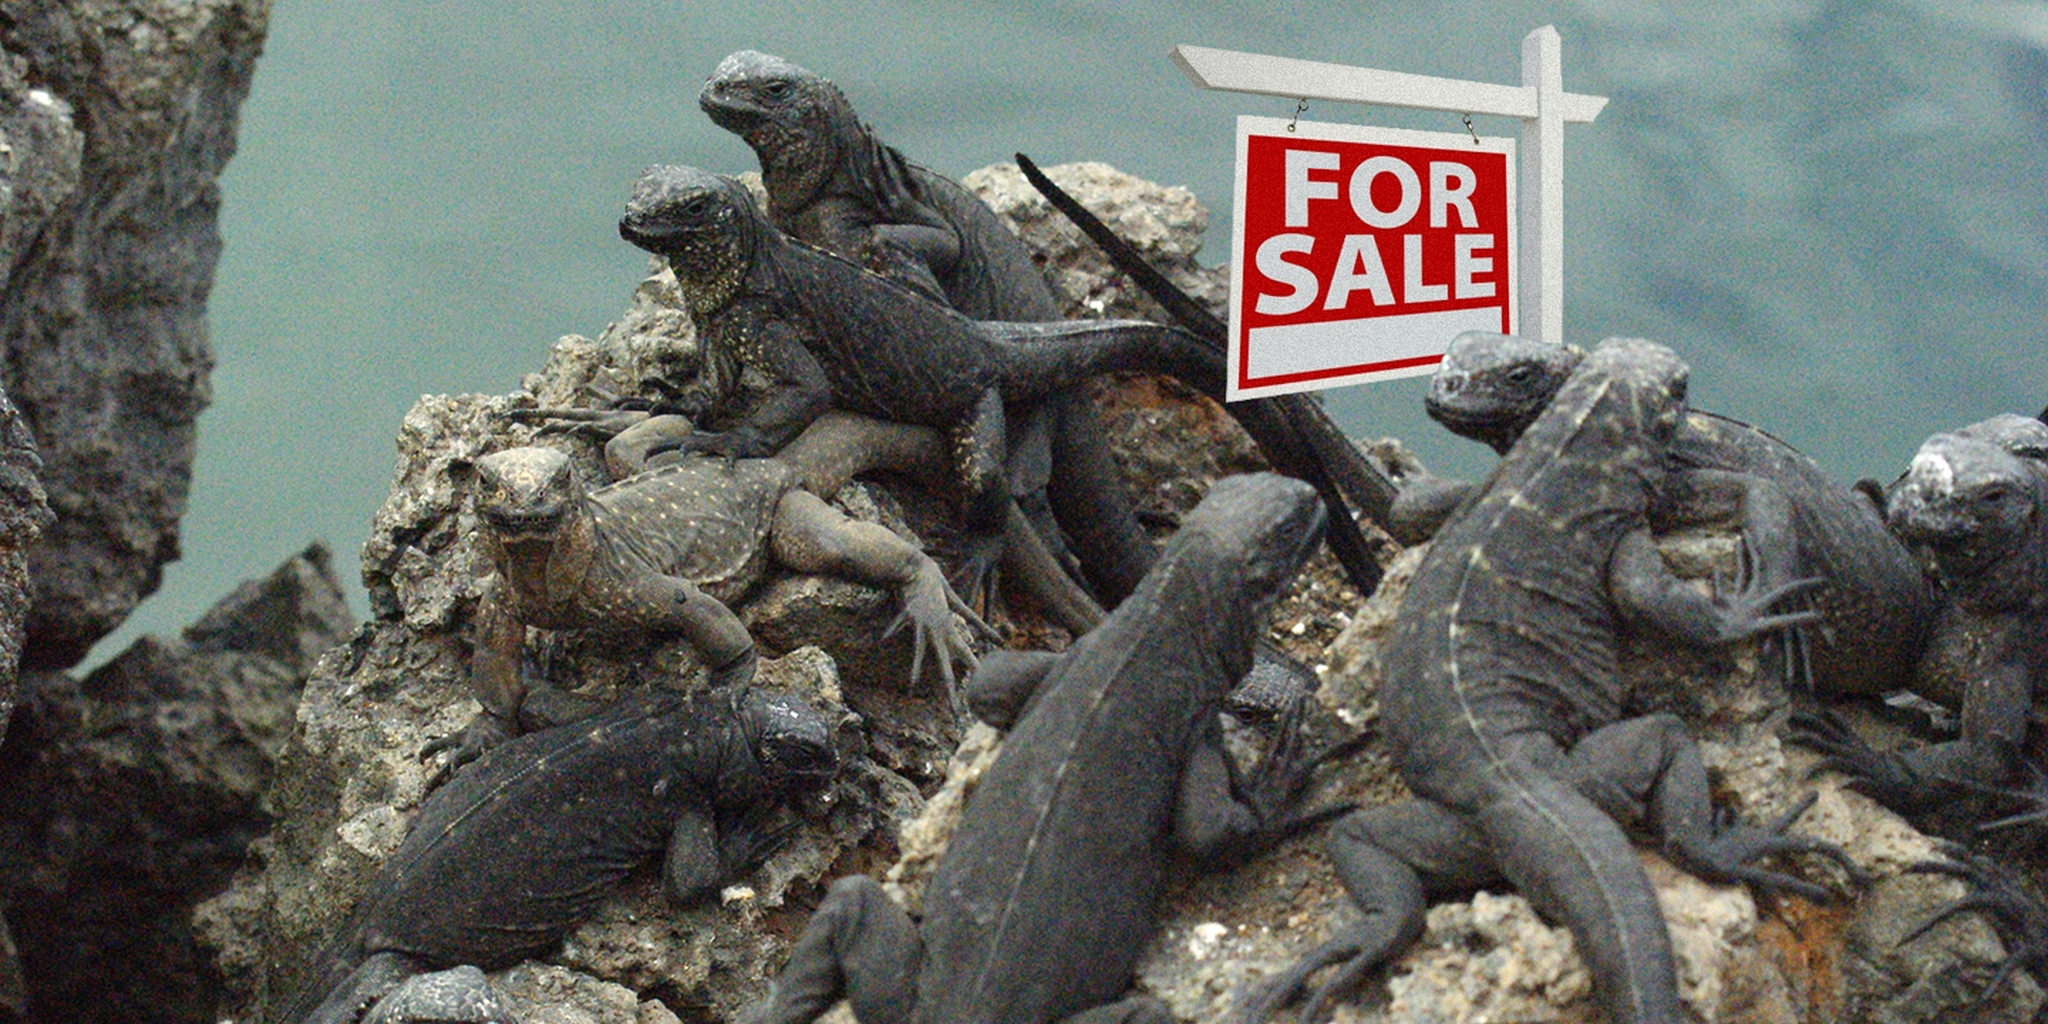 Lizards on Rock with For Sale Sign